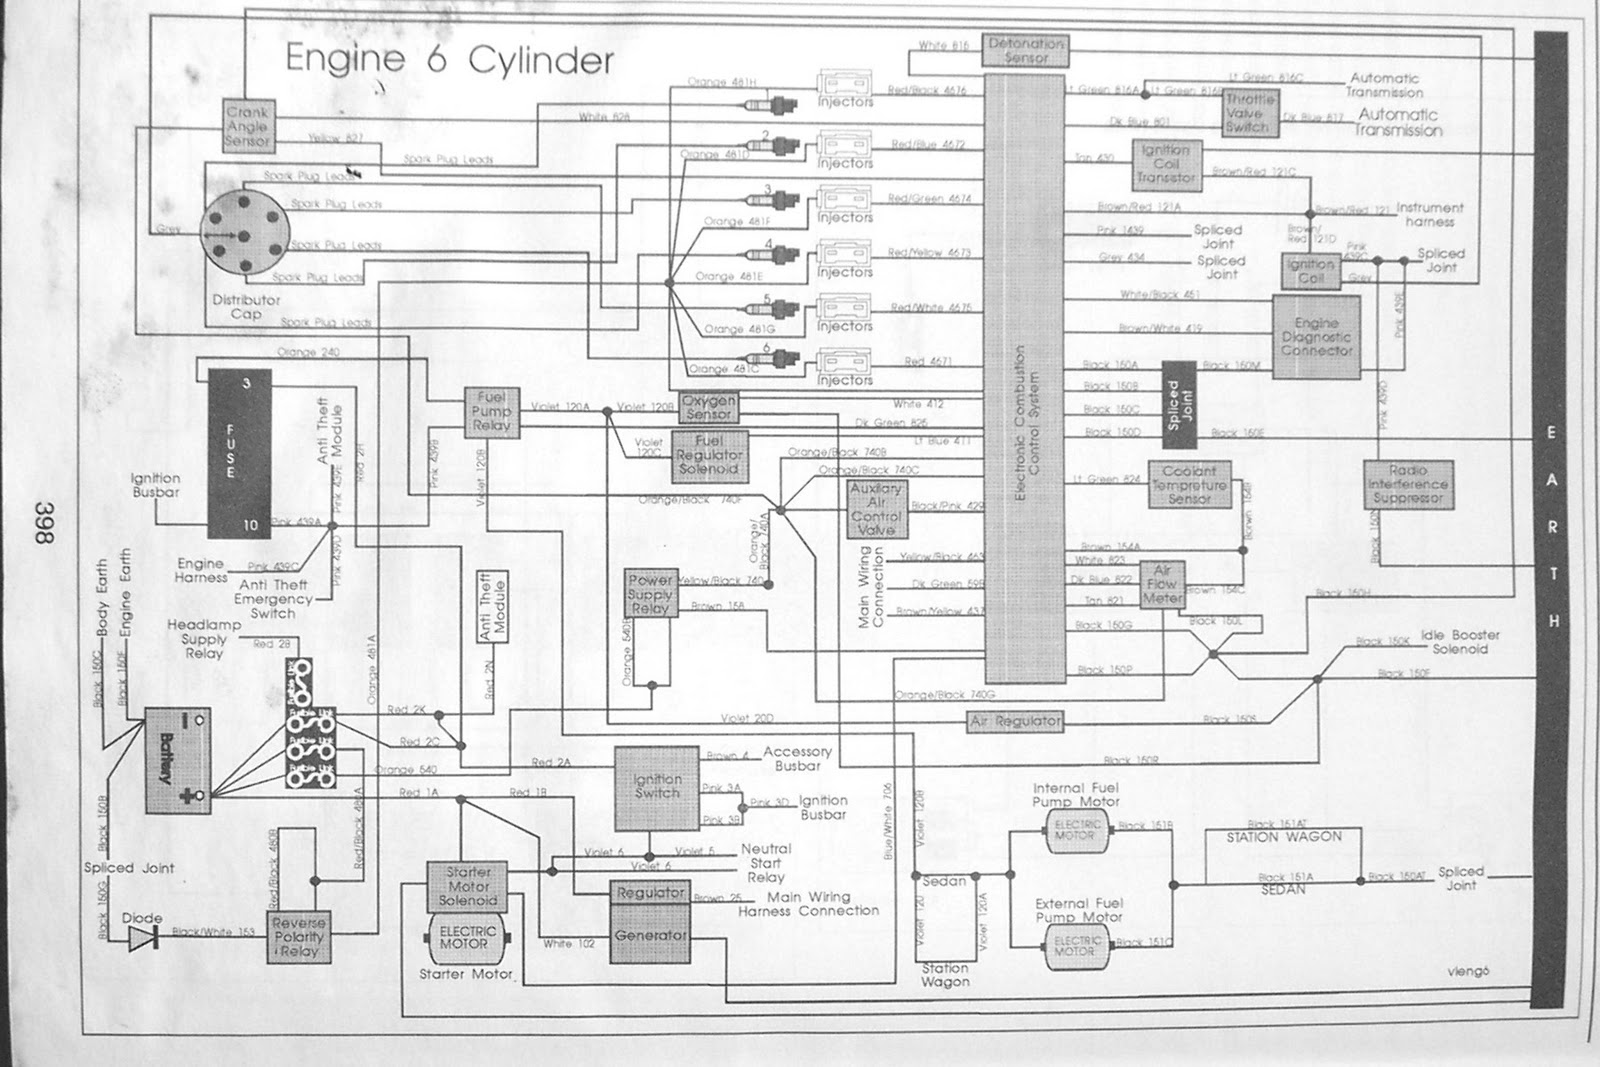 Vn Commodore Engine Wiring Diagram 34 Images Ford 2 9 V6 Rb30 Diagrams 280zx Project 14b At